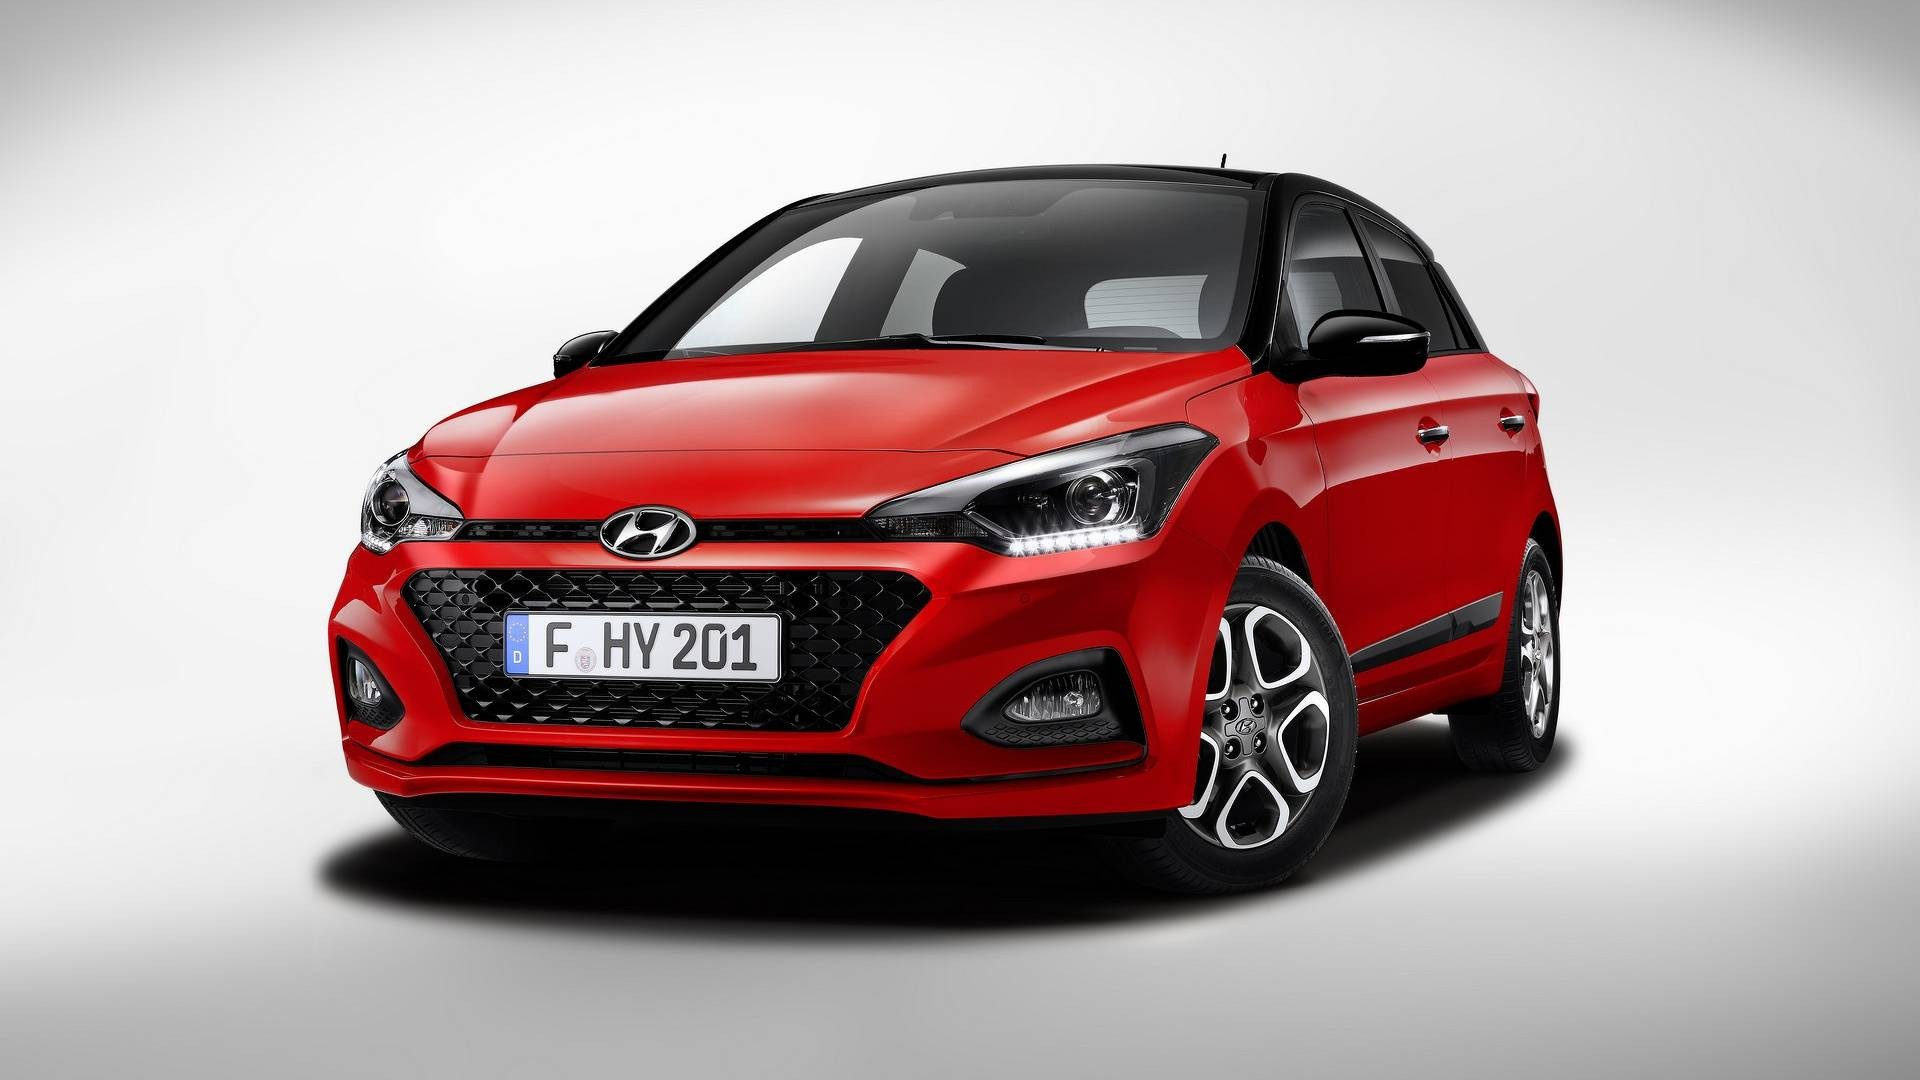 2018 hyundai i20 facelift looks mundane gets dual clutch transmission autoevolution. Black Bedroom Furniture Sets. Home Design Ideas